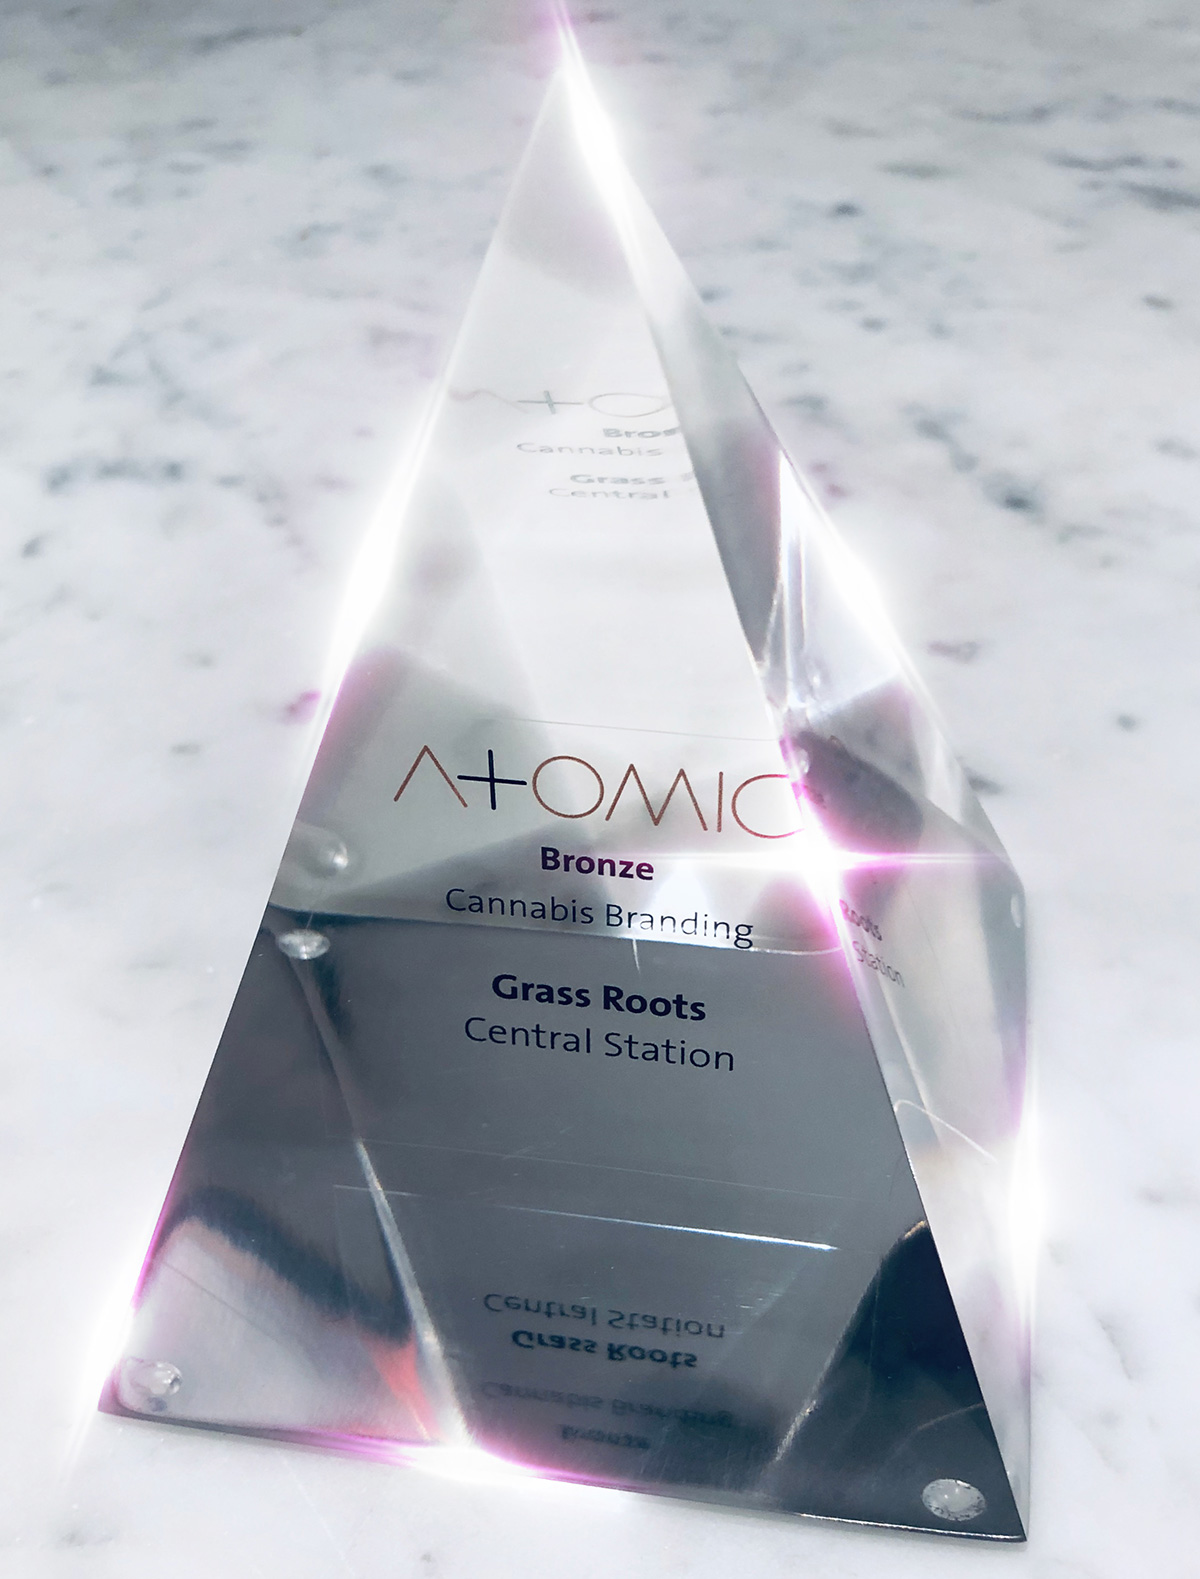 Atomic Award - Recognition Is Central